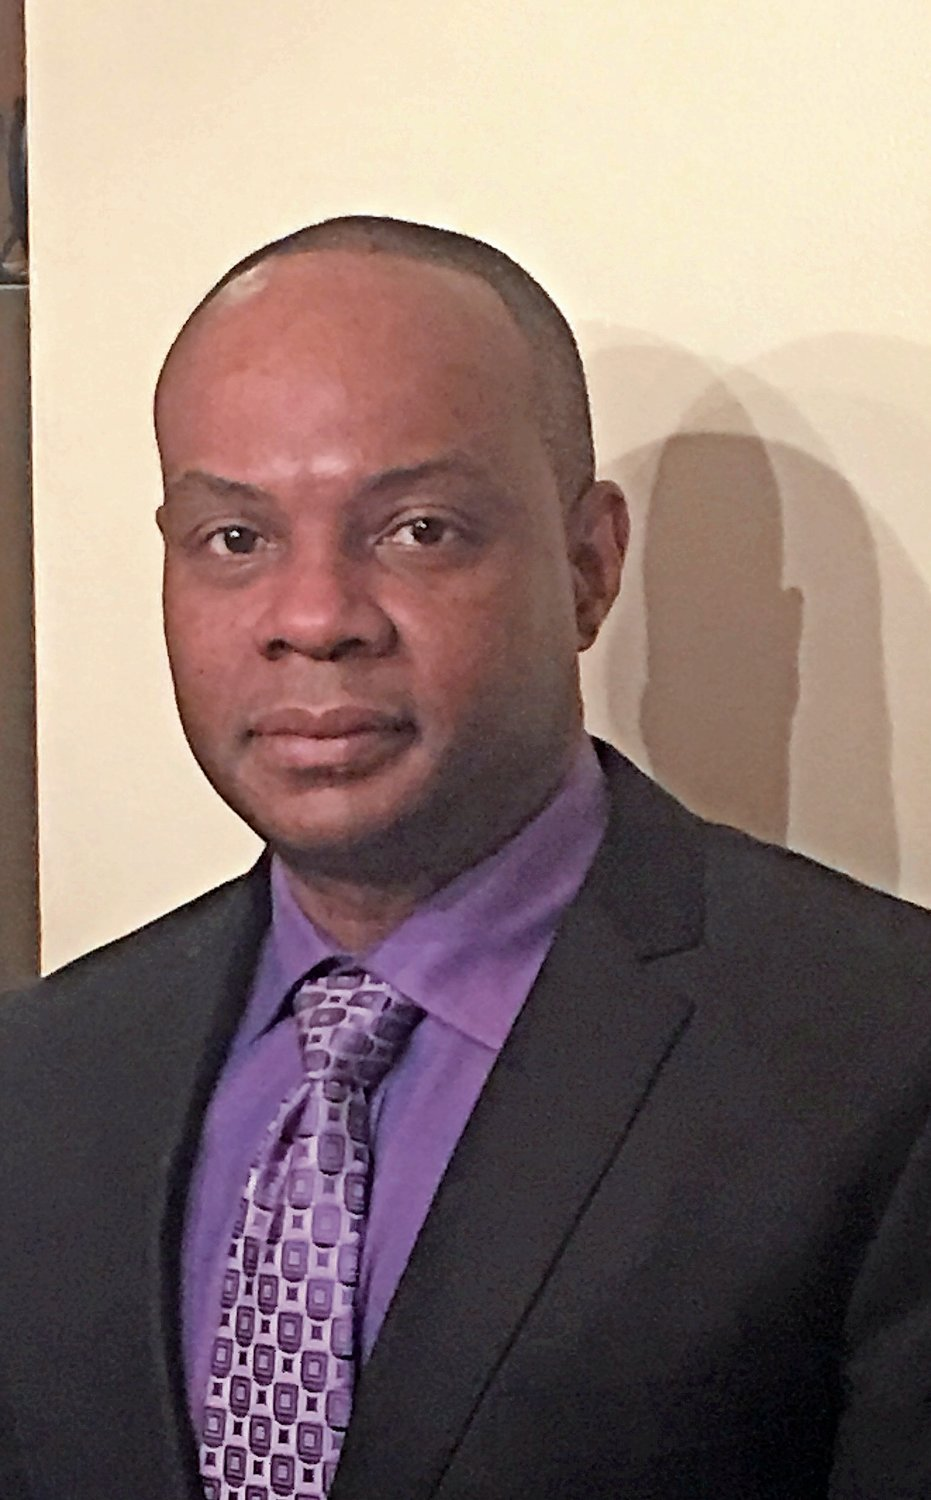 Hendrick Colbert is running for District 30 board.